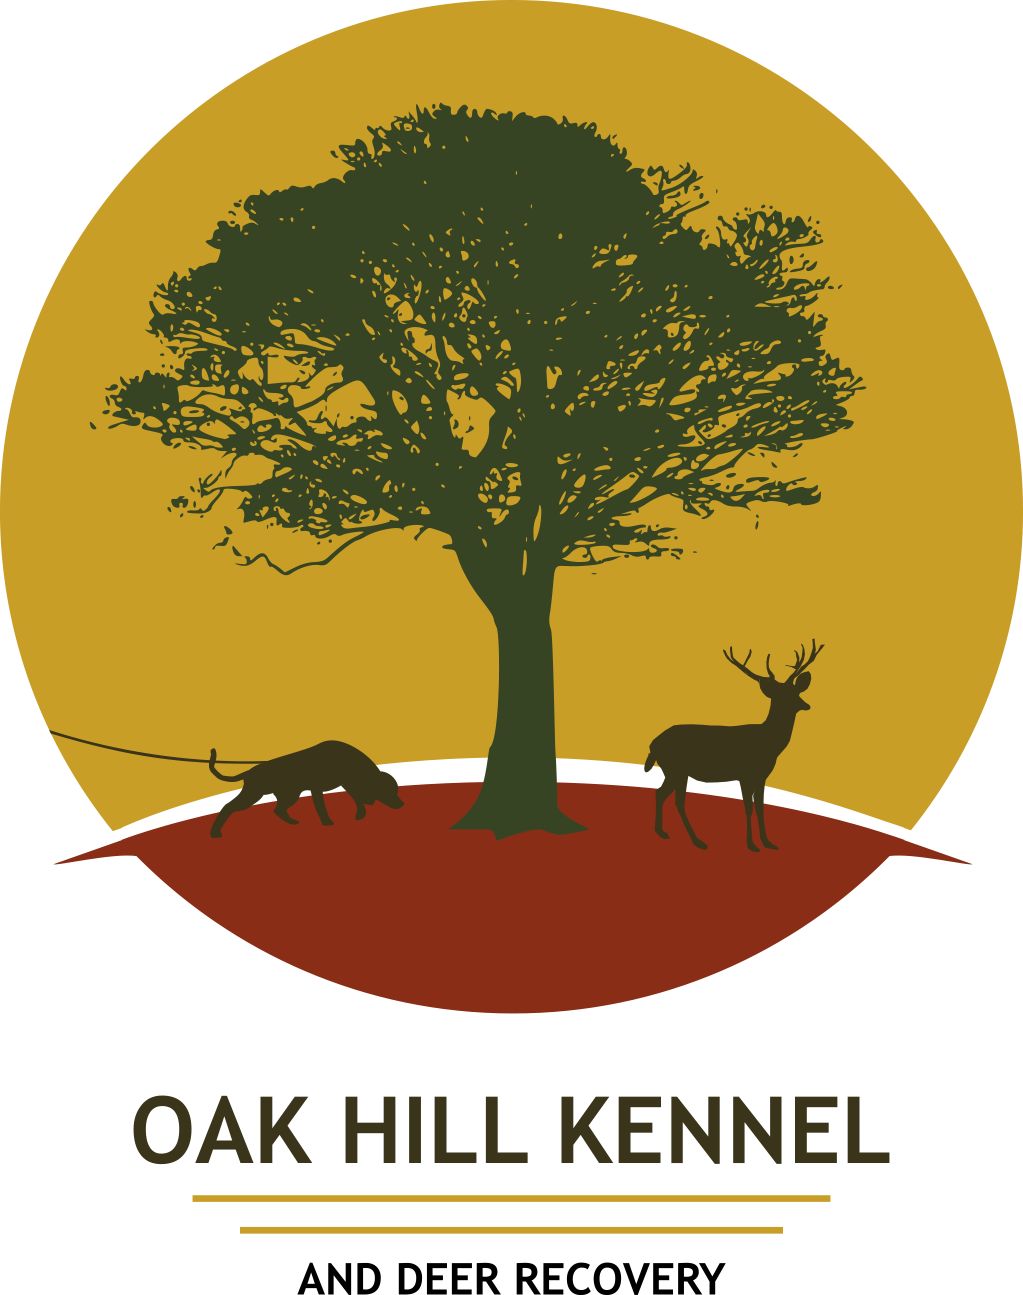 Oak Hill Kennel